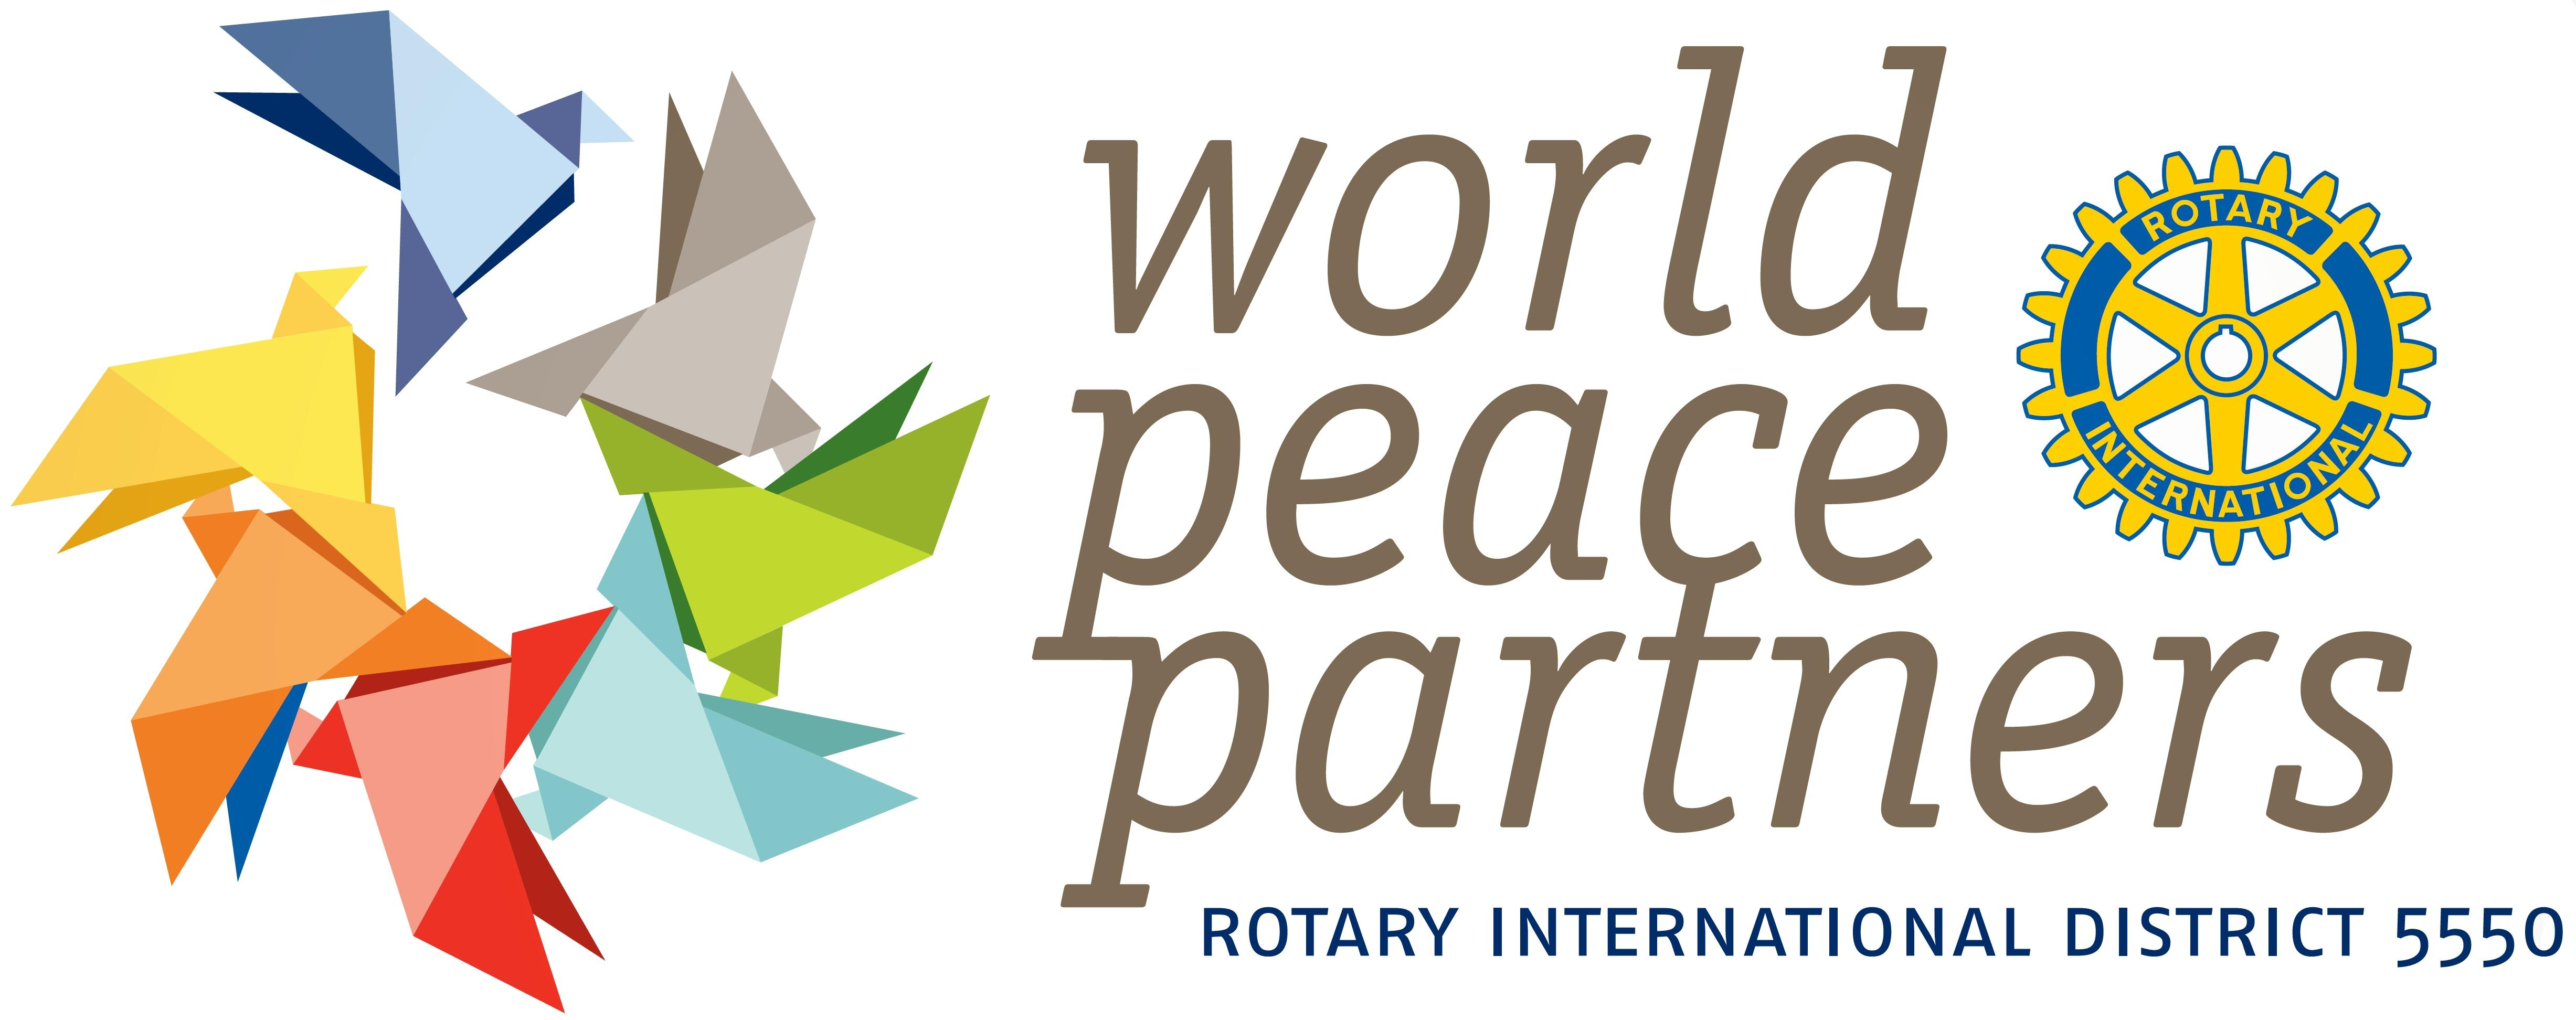 Rotary World Peace Partners